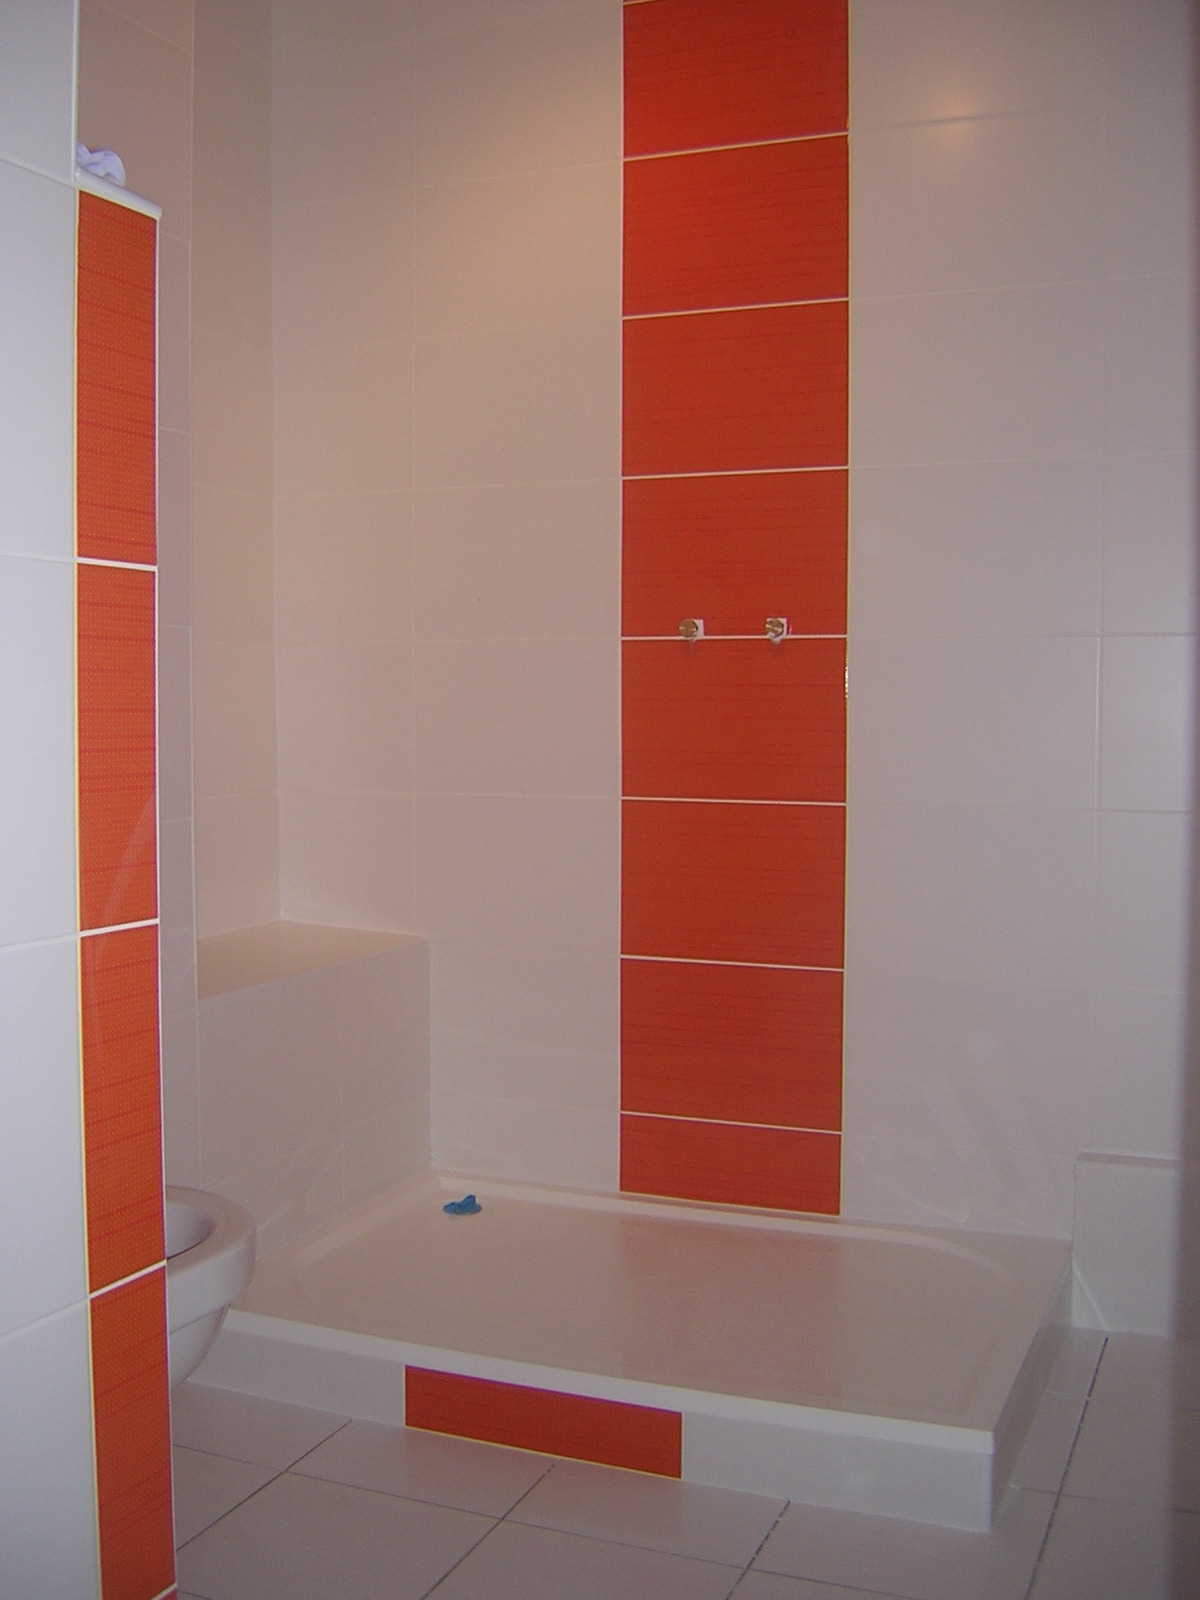 Faience Carrelage orange